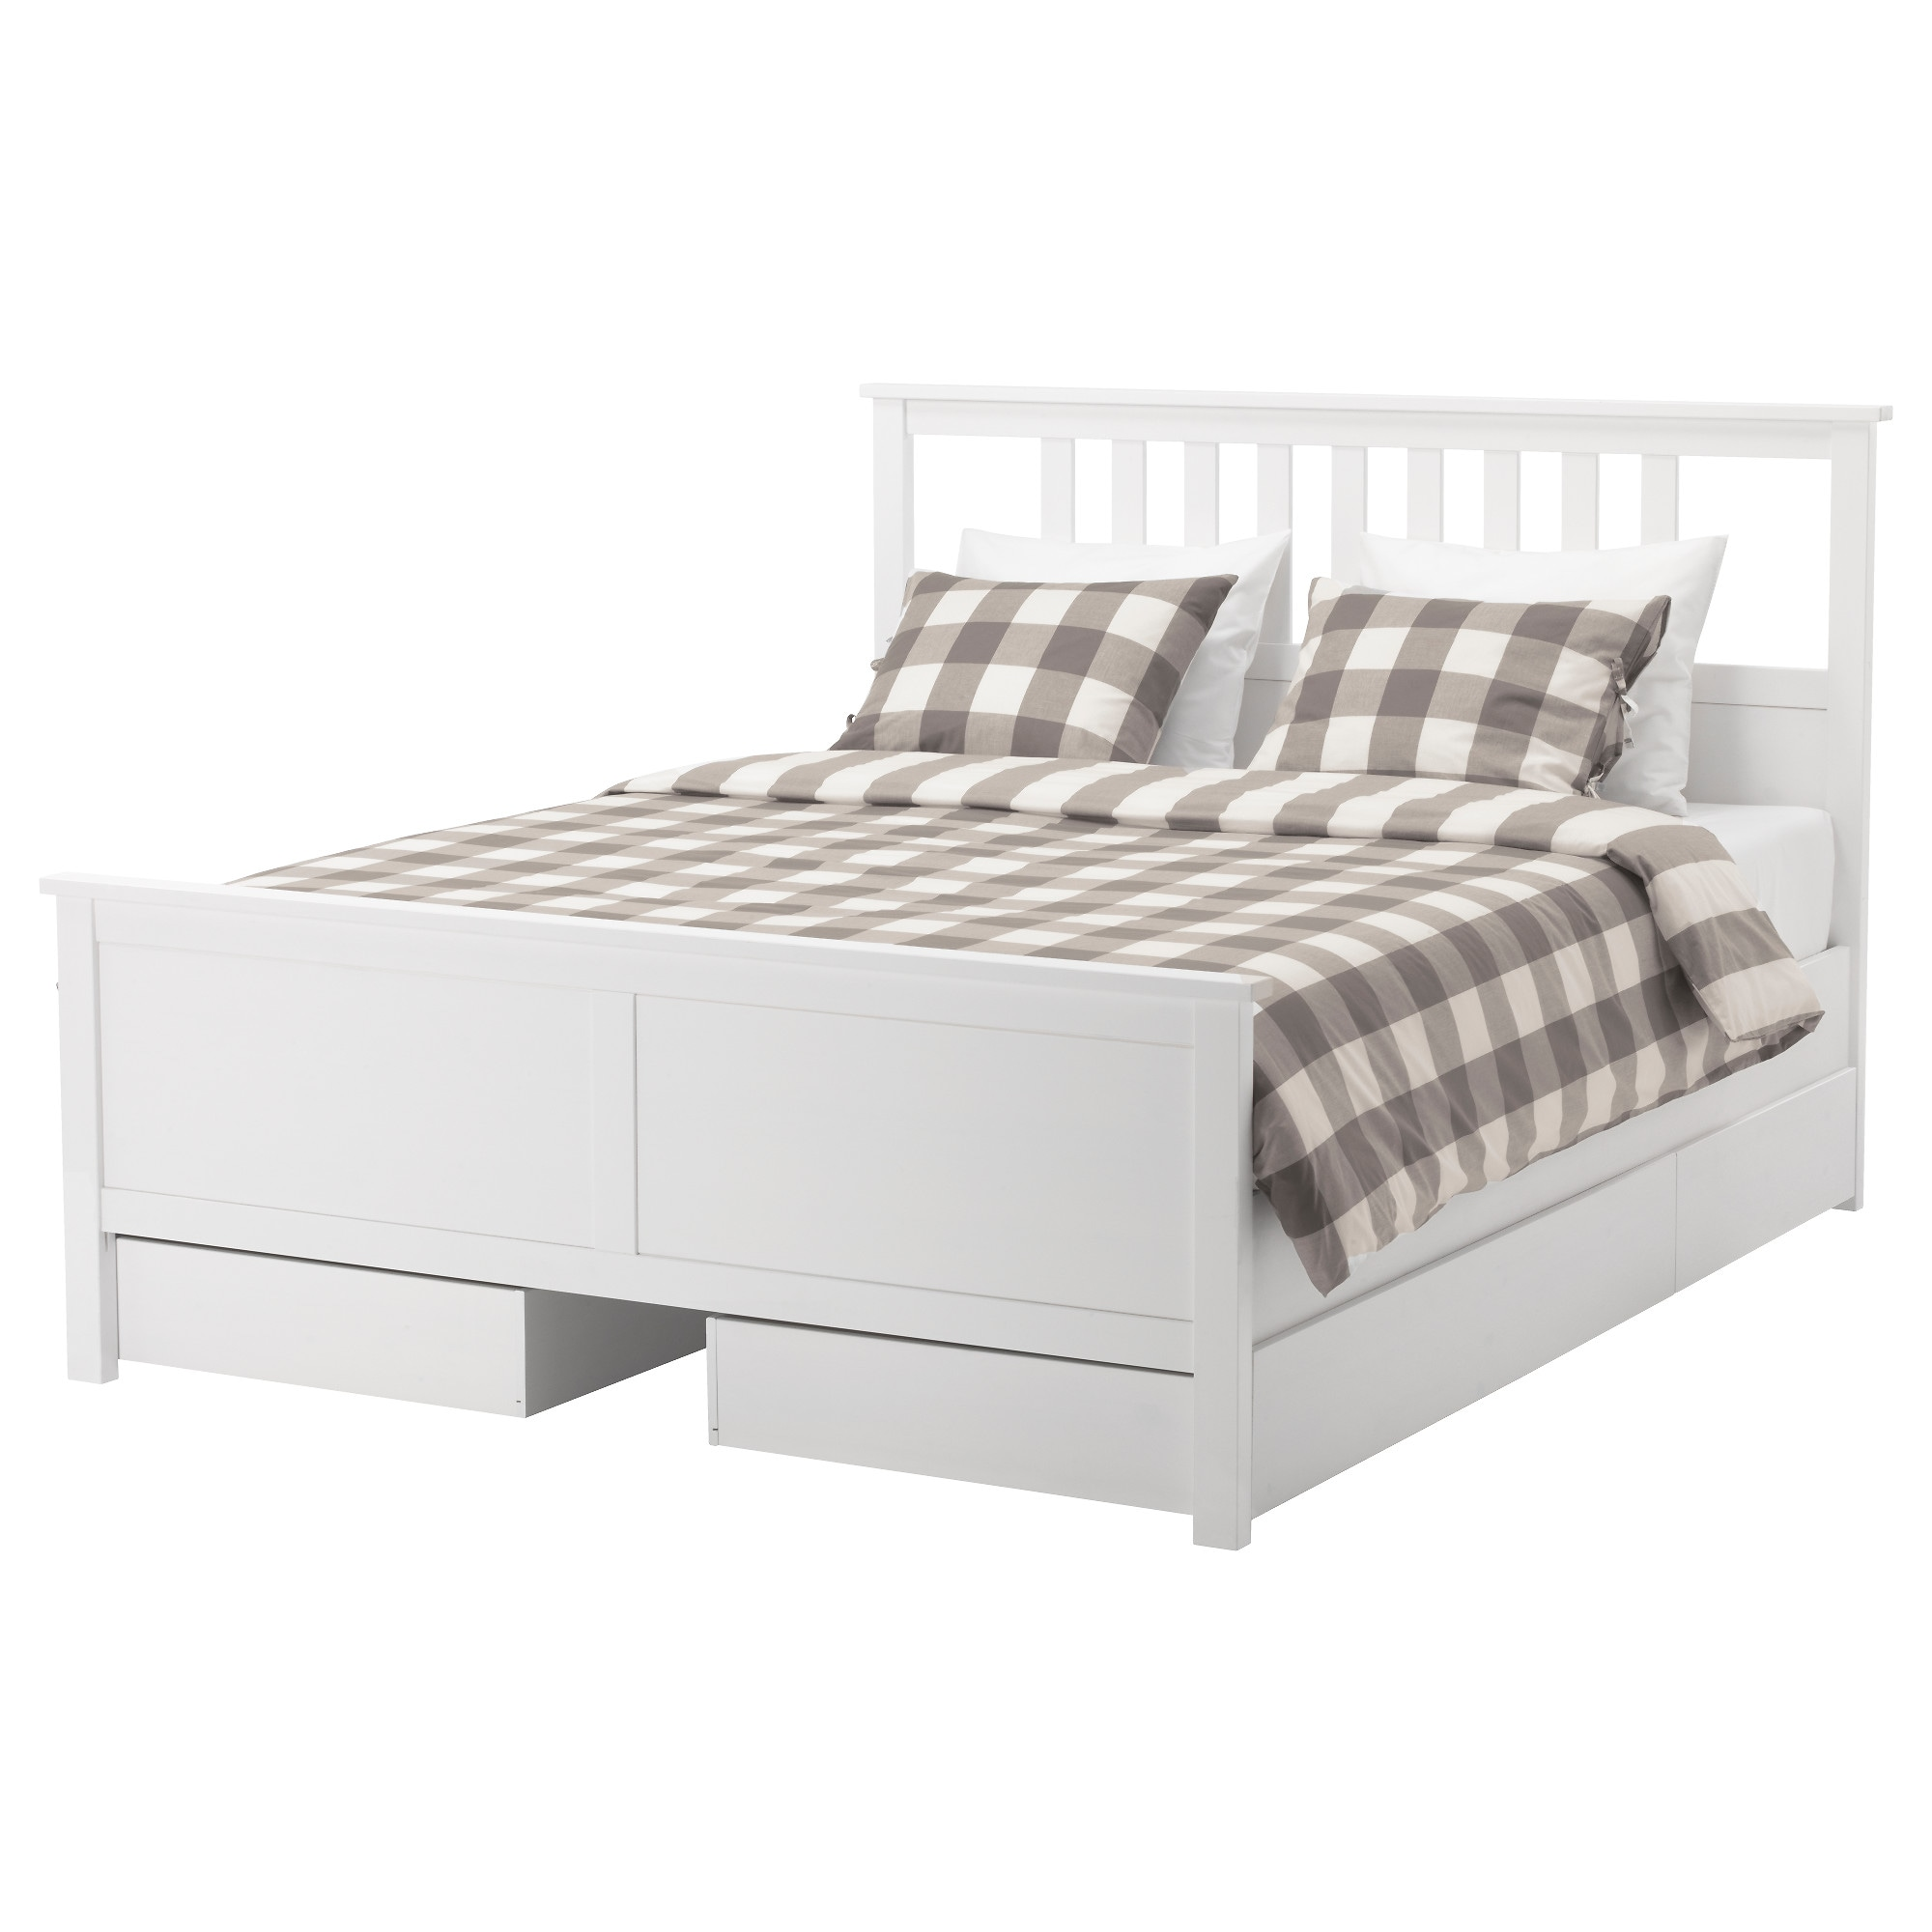 hemnes bed frame with 4 storage boxes white stain lury length 83 7